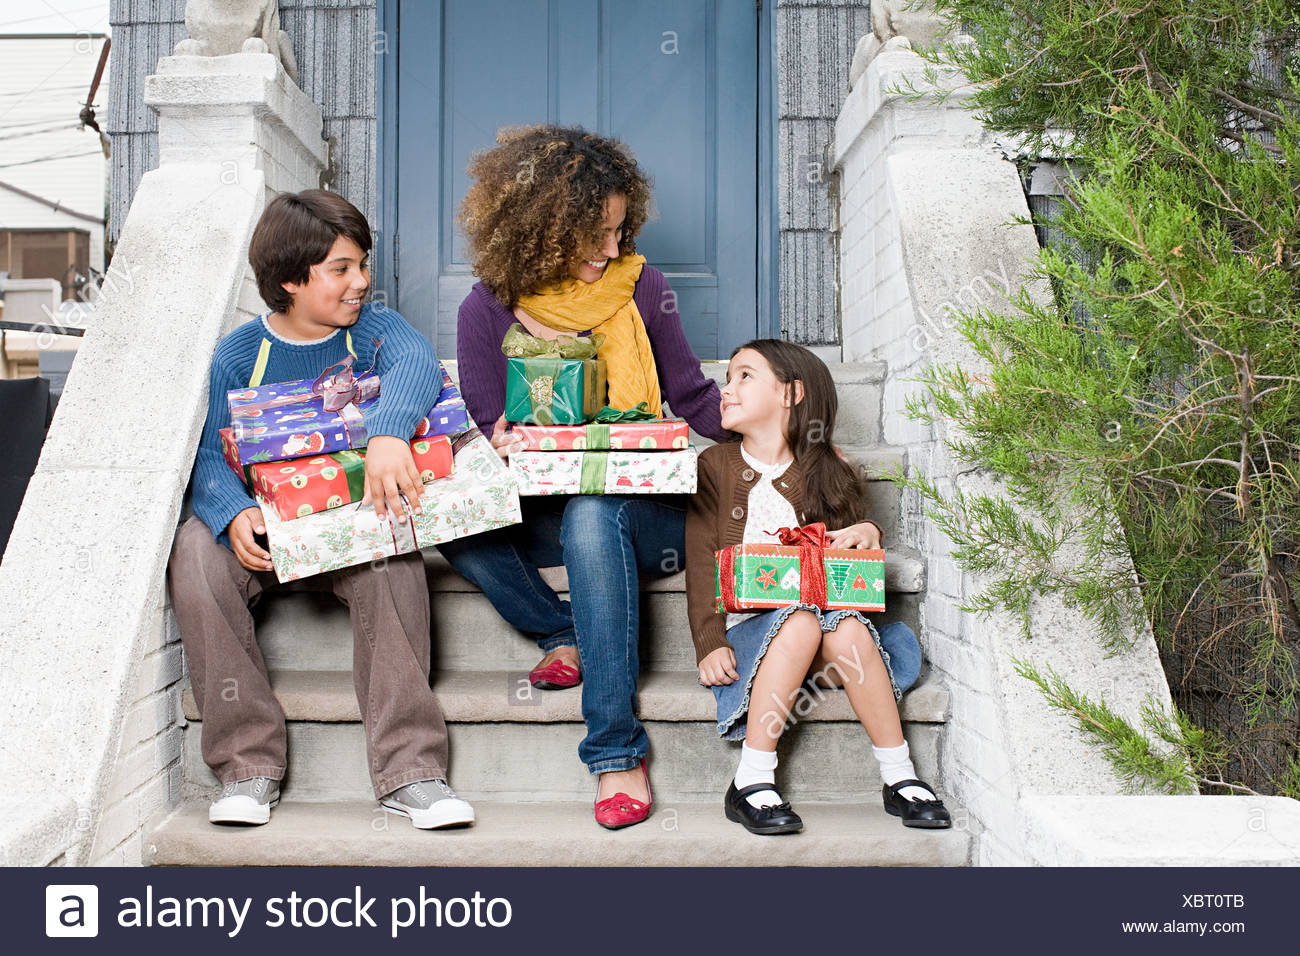 Mother and children sat on a step holding gifts - Stock Image